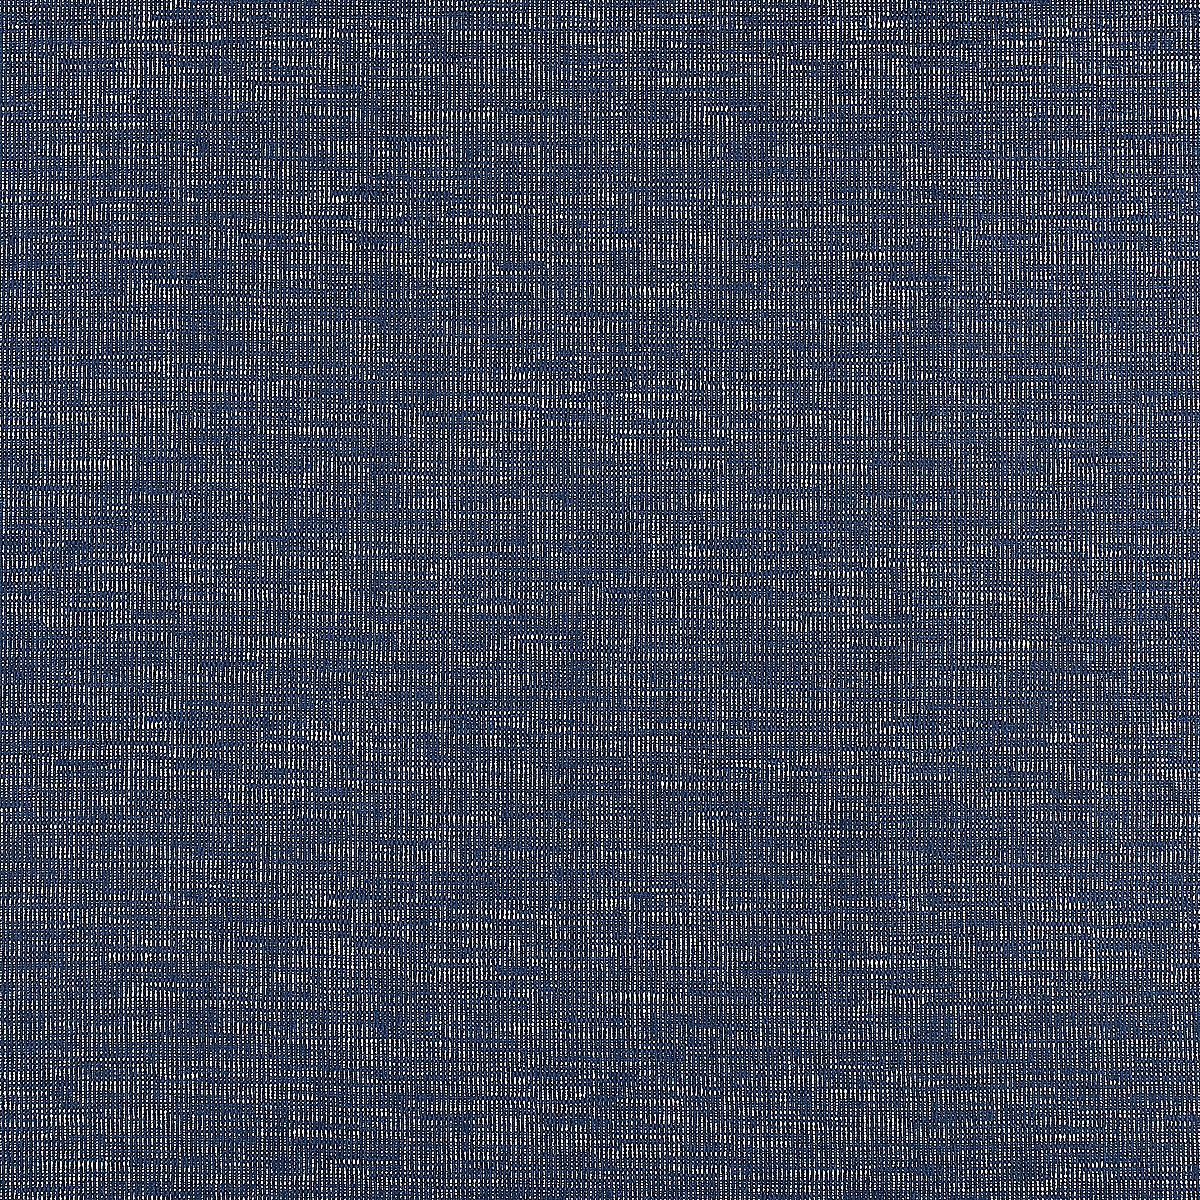 Surf's Up: Academy (fabric yardage)